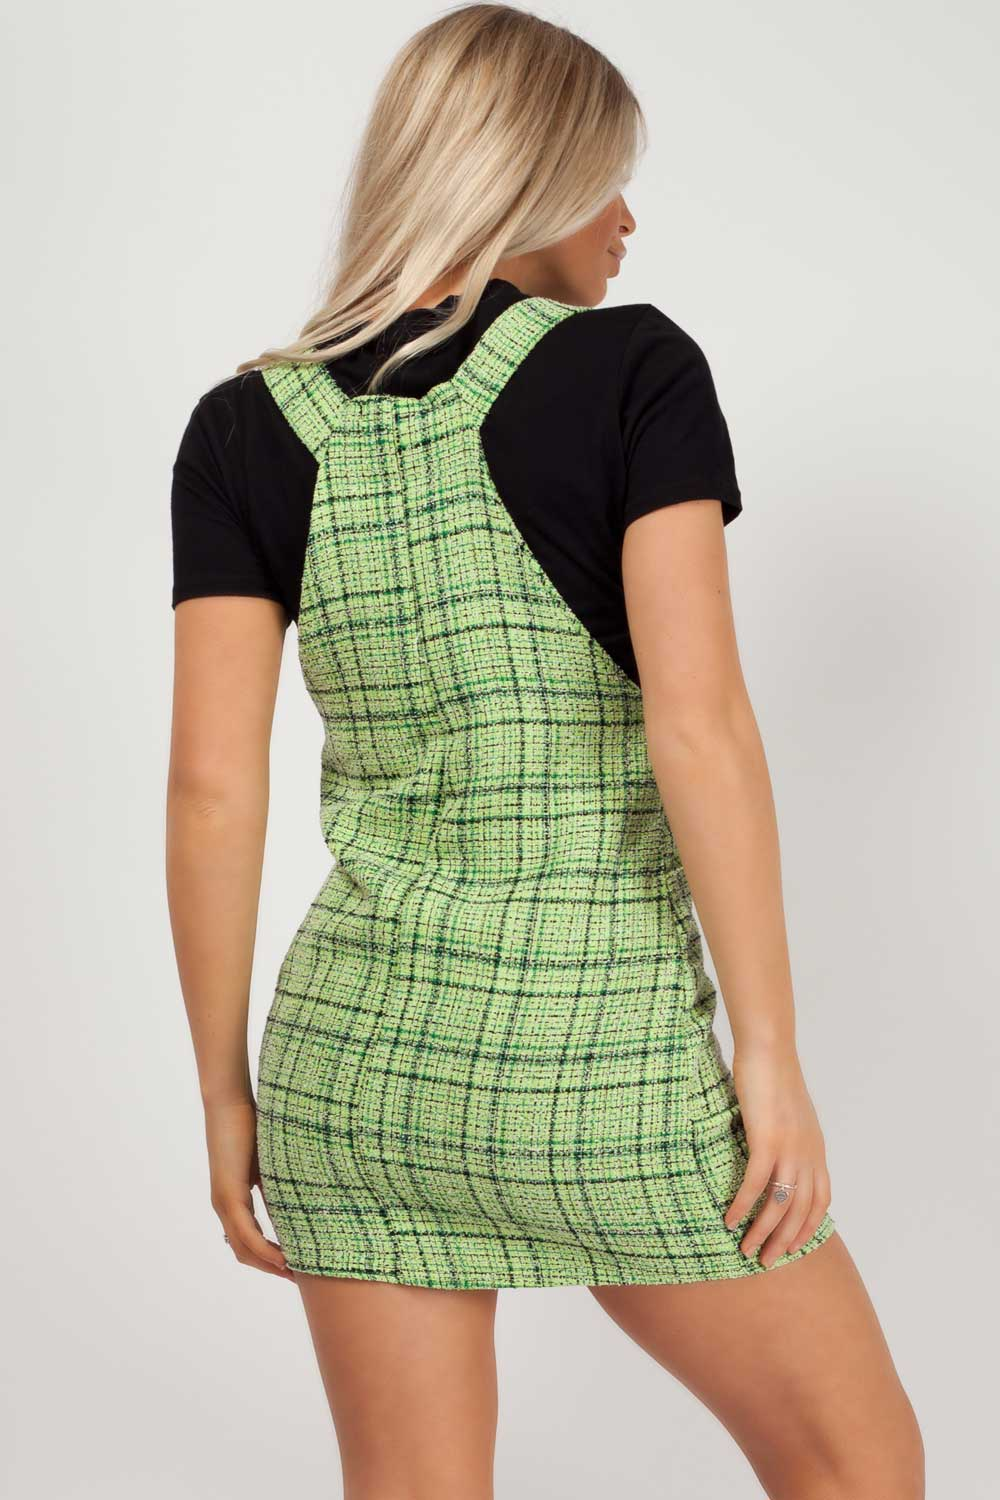 green pinafore dress styledup fashion